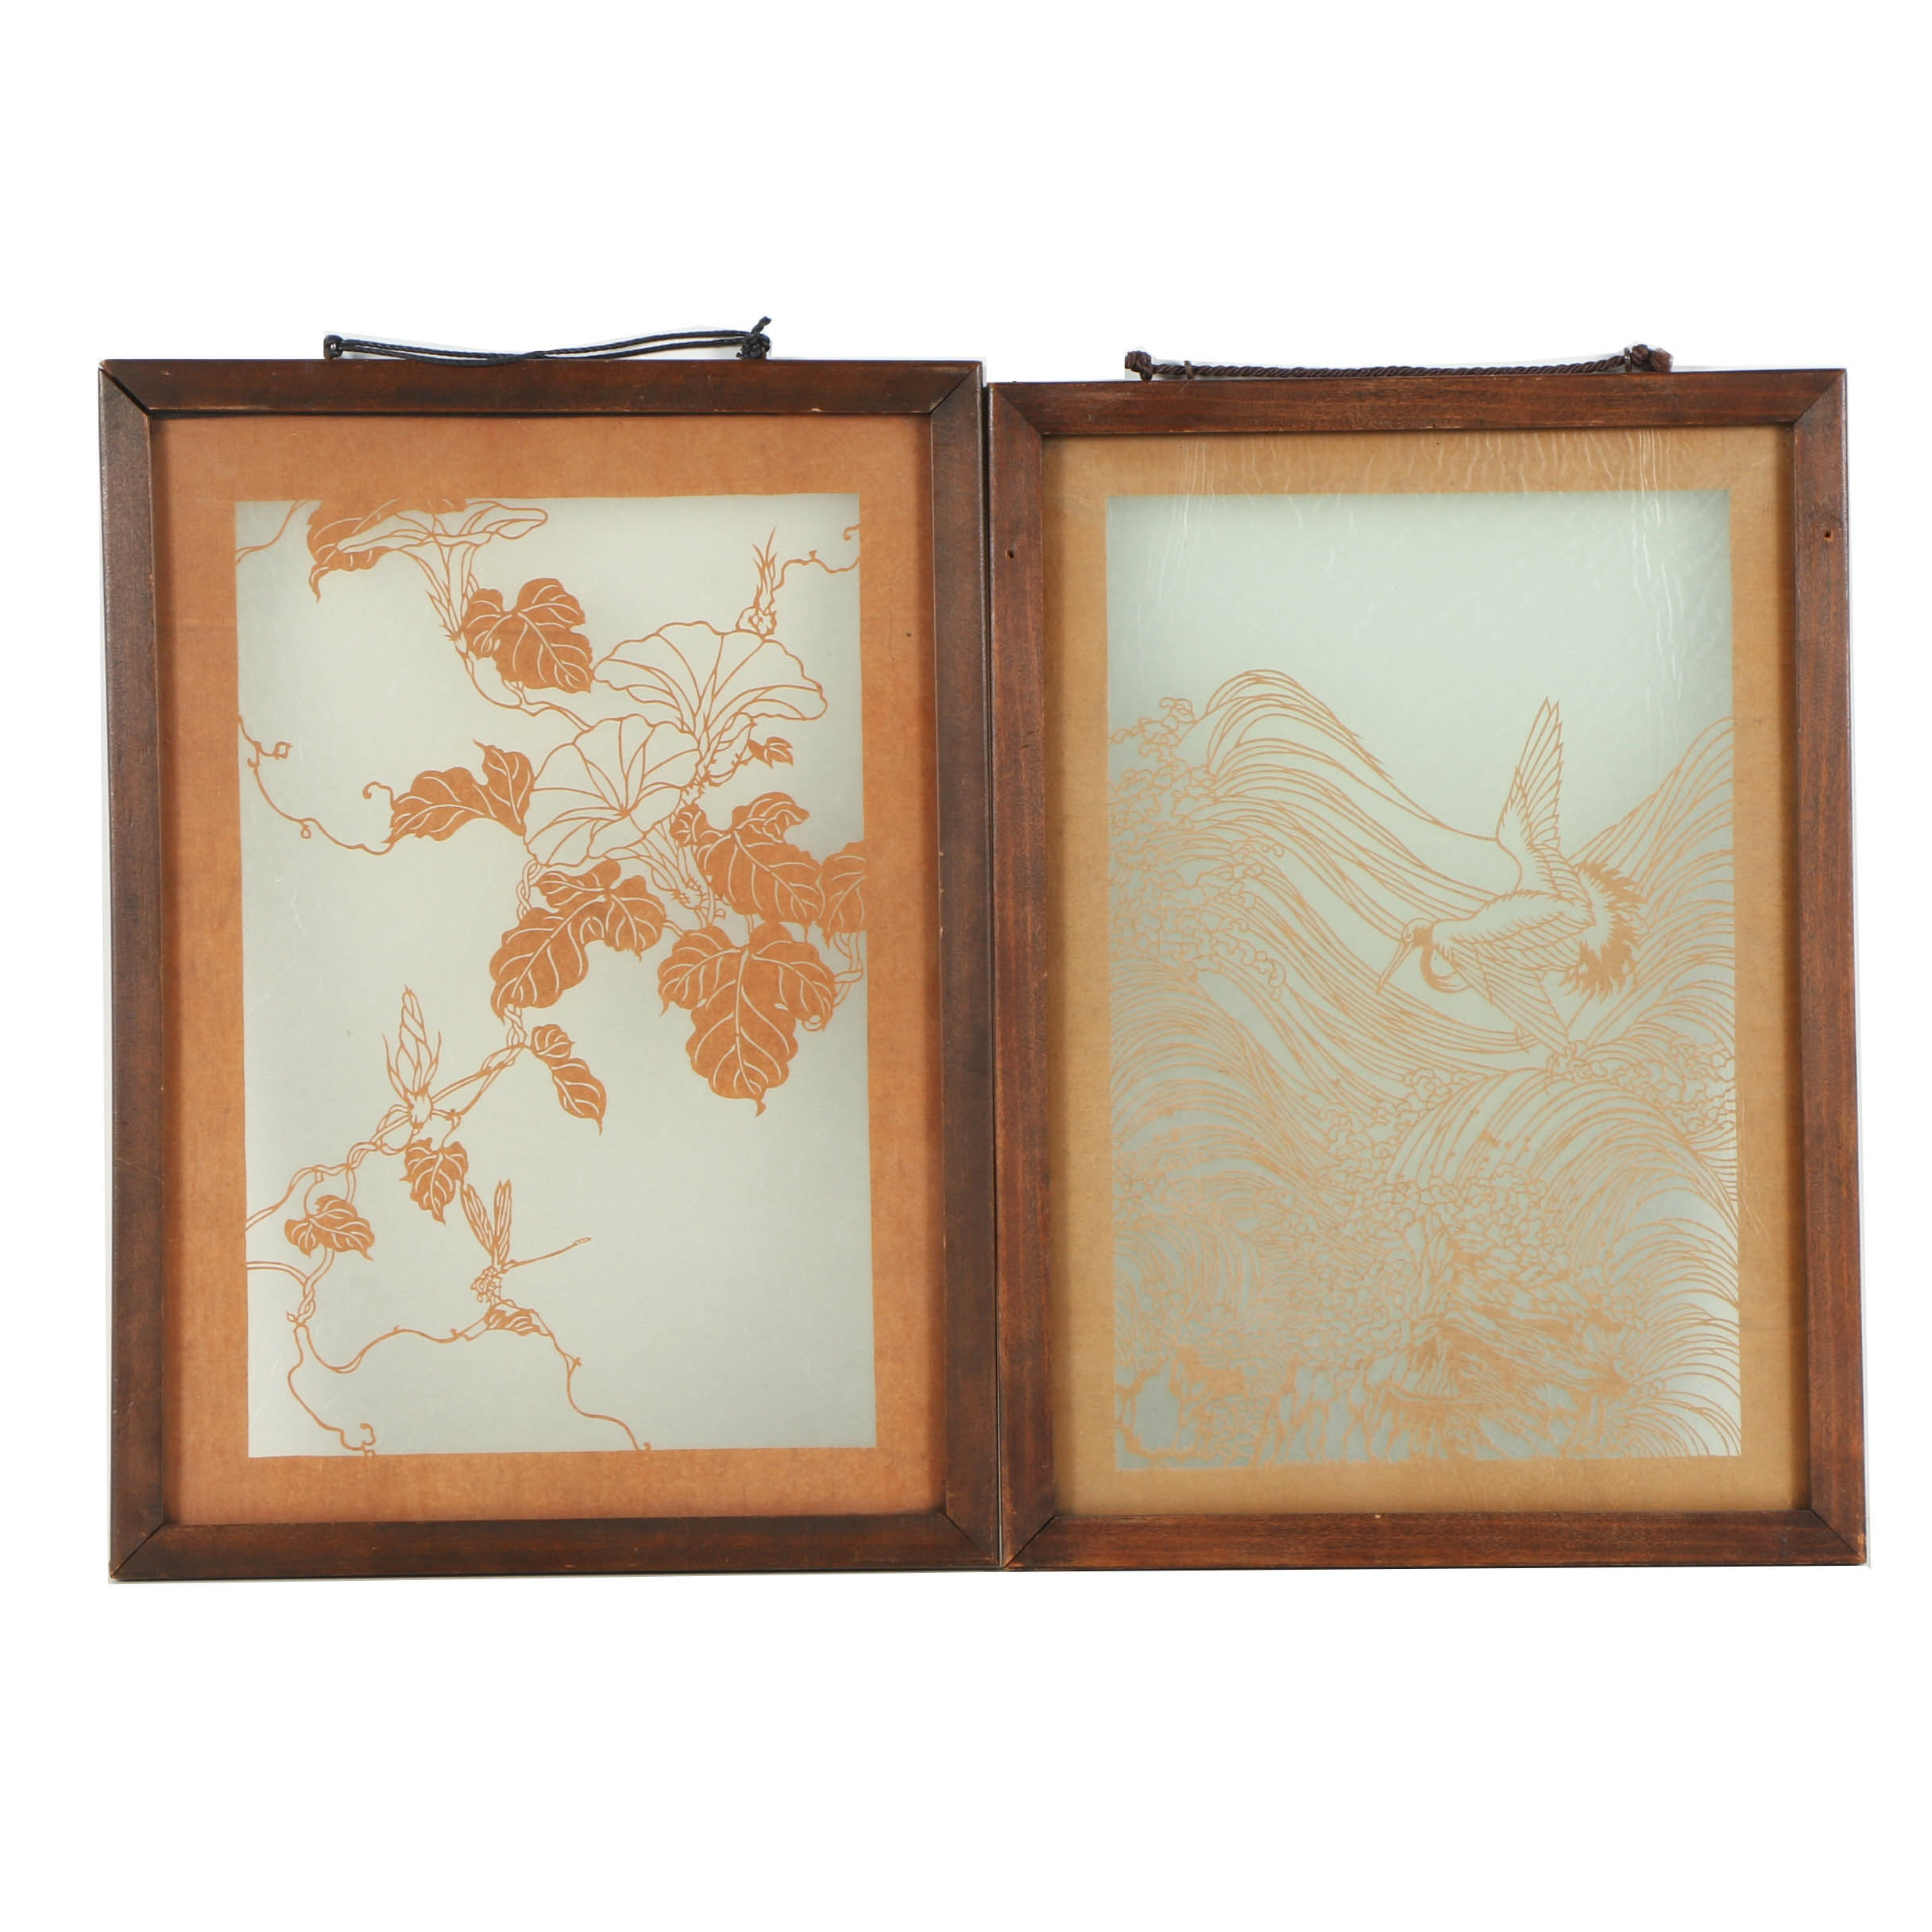 Pair of Japanese Kirigami Paper Cutout Compositions of Nature Scenes